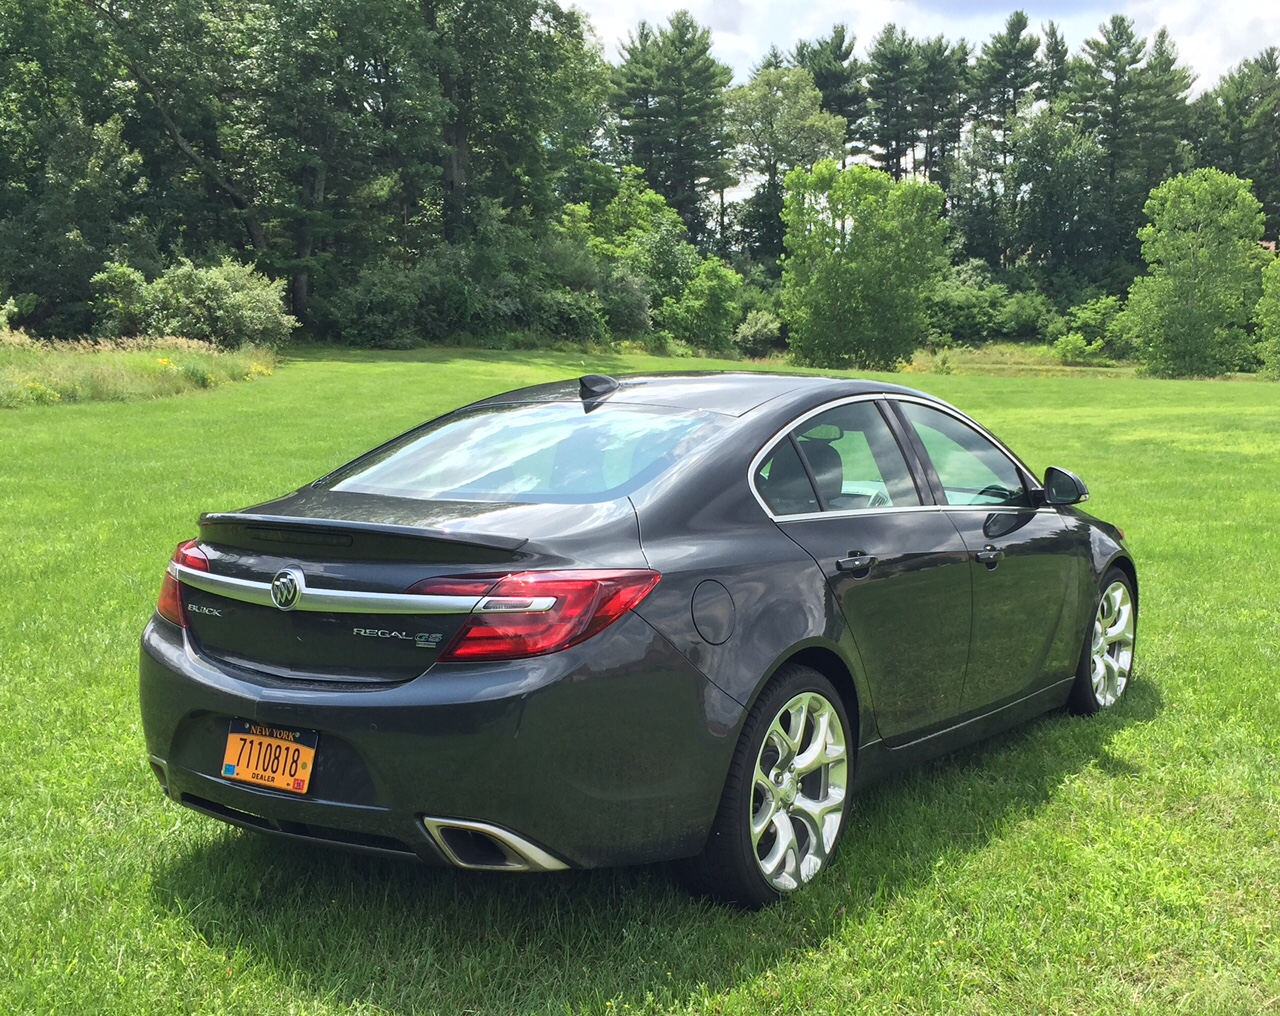 REVIEW: The 2015 Buick Regal GS Is A Beautiful Package